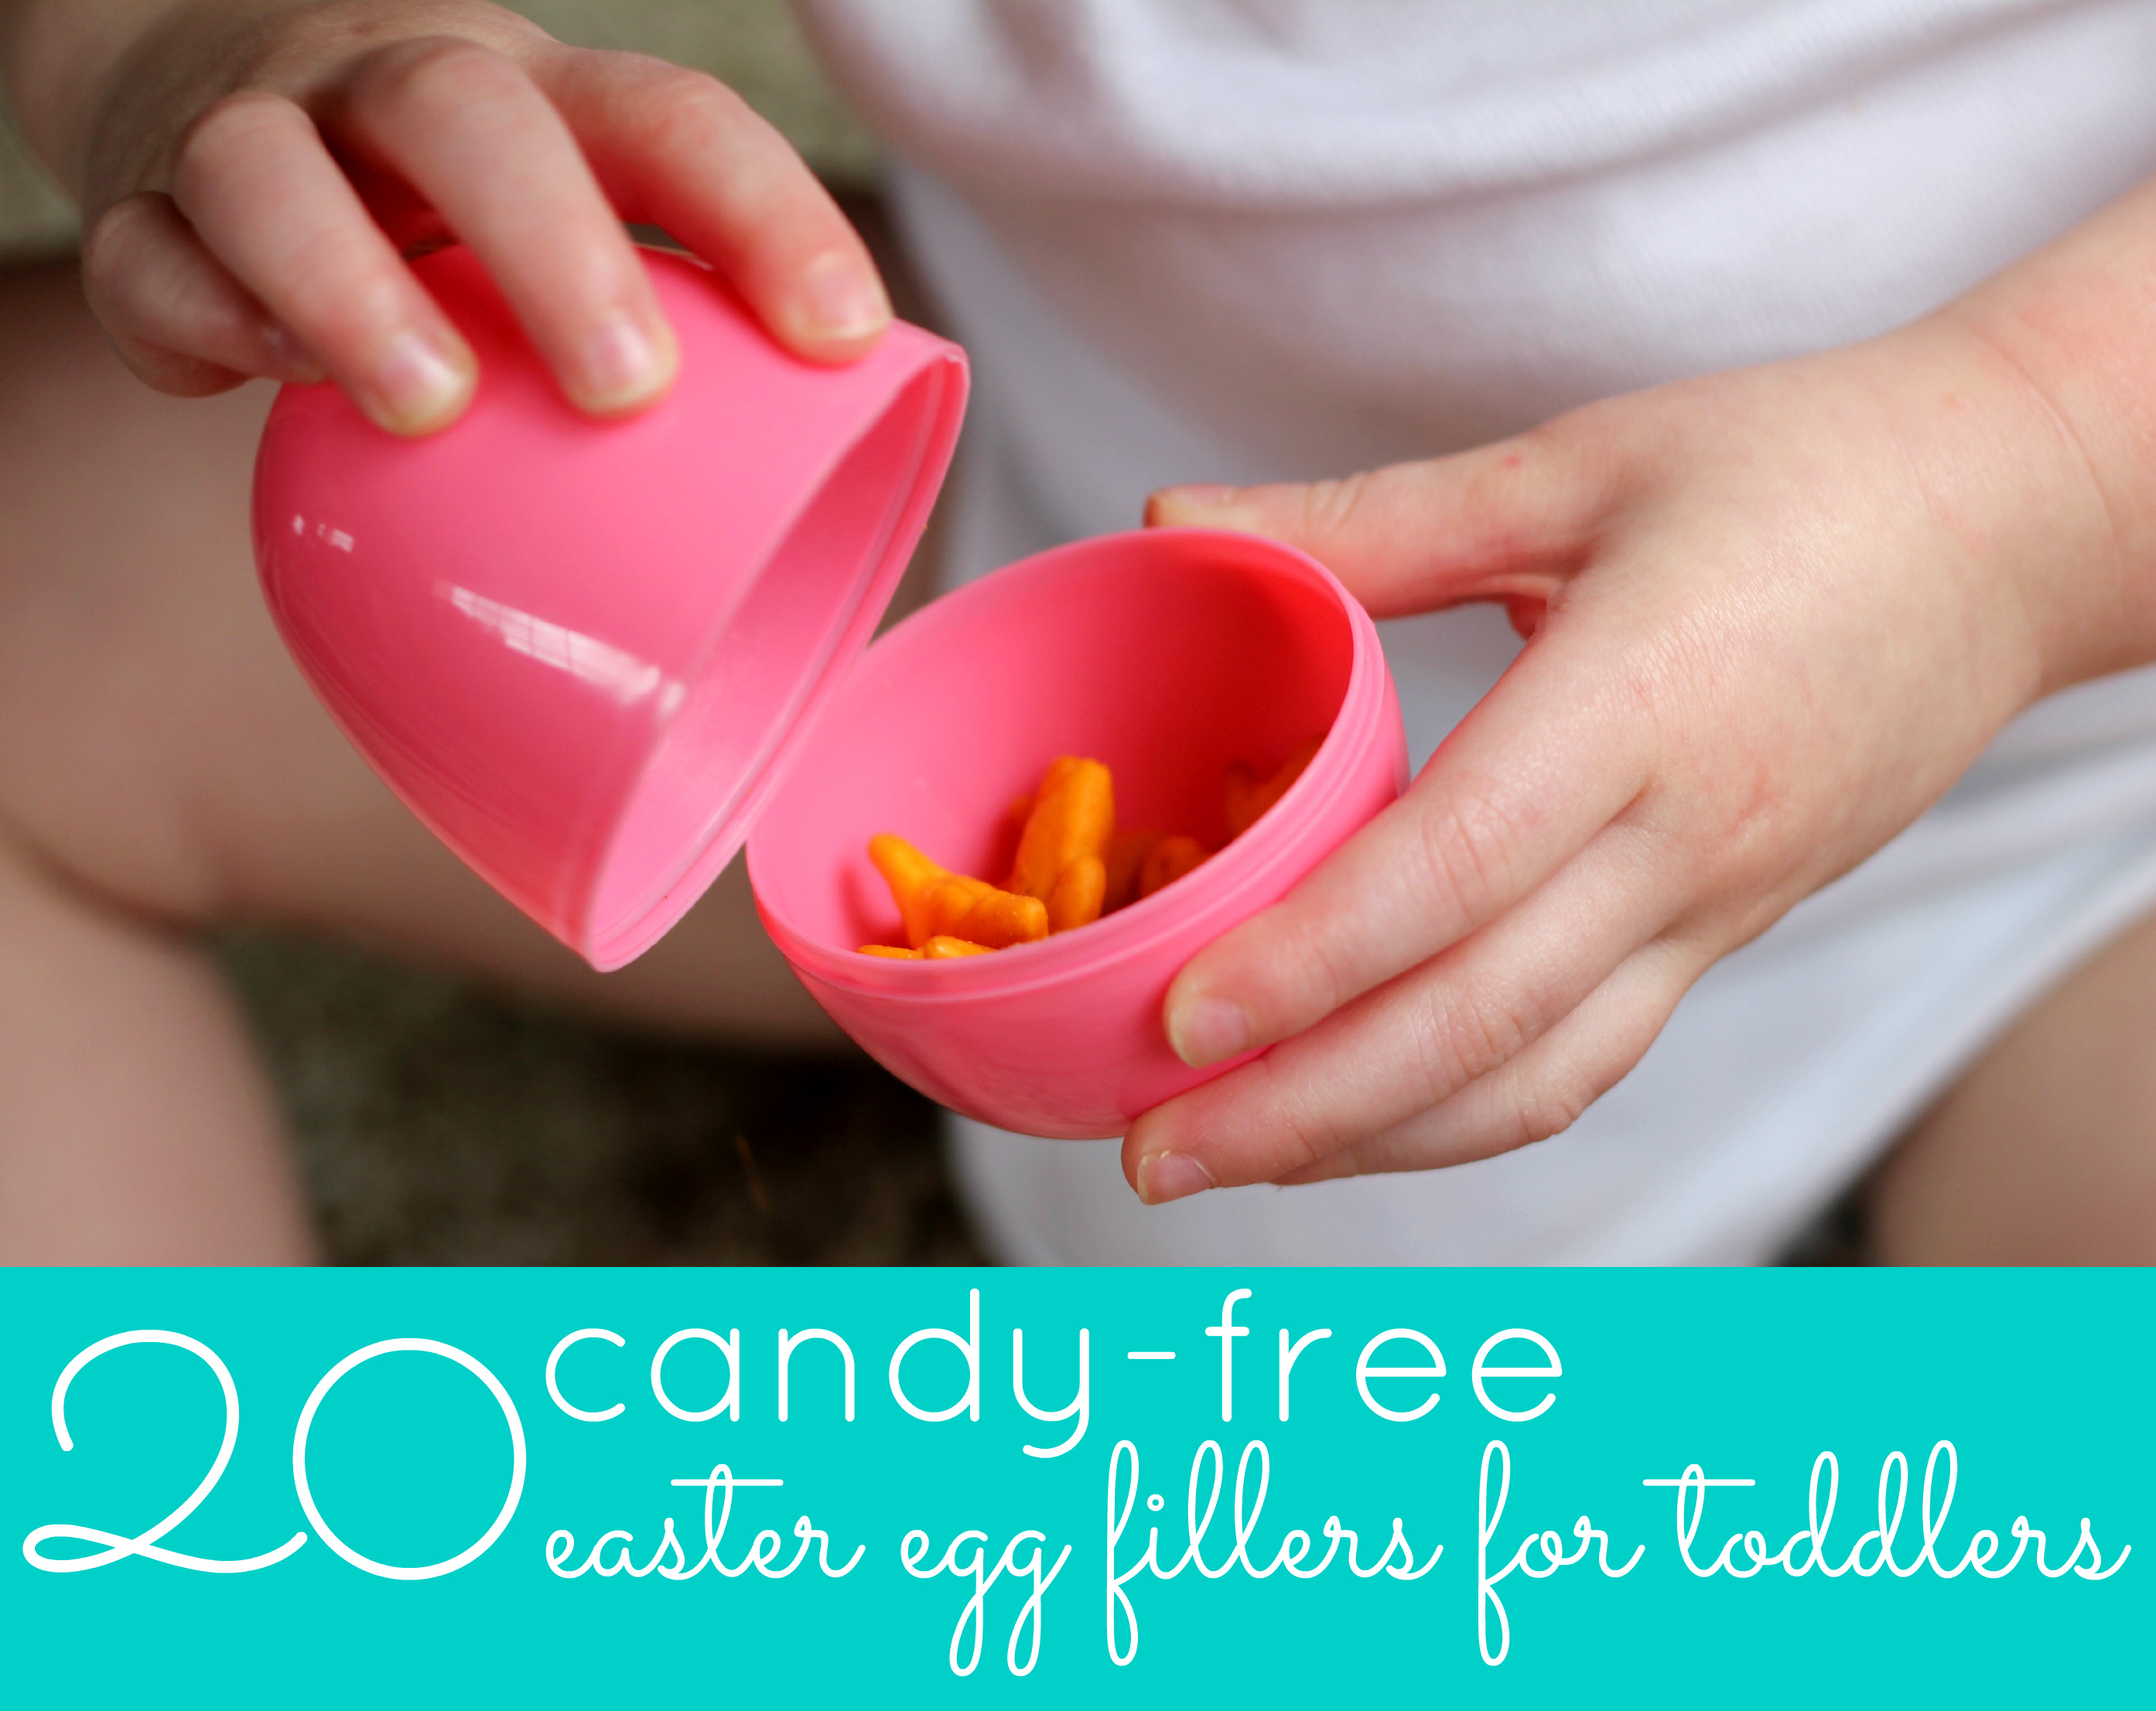 20 Candy Free Easter Egg Fillers For Toddlers